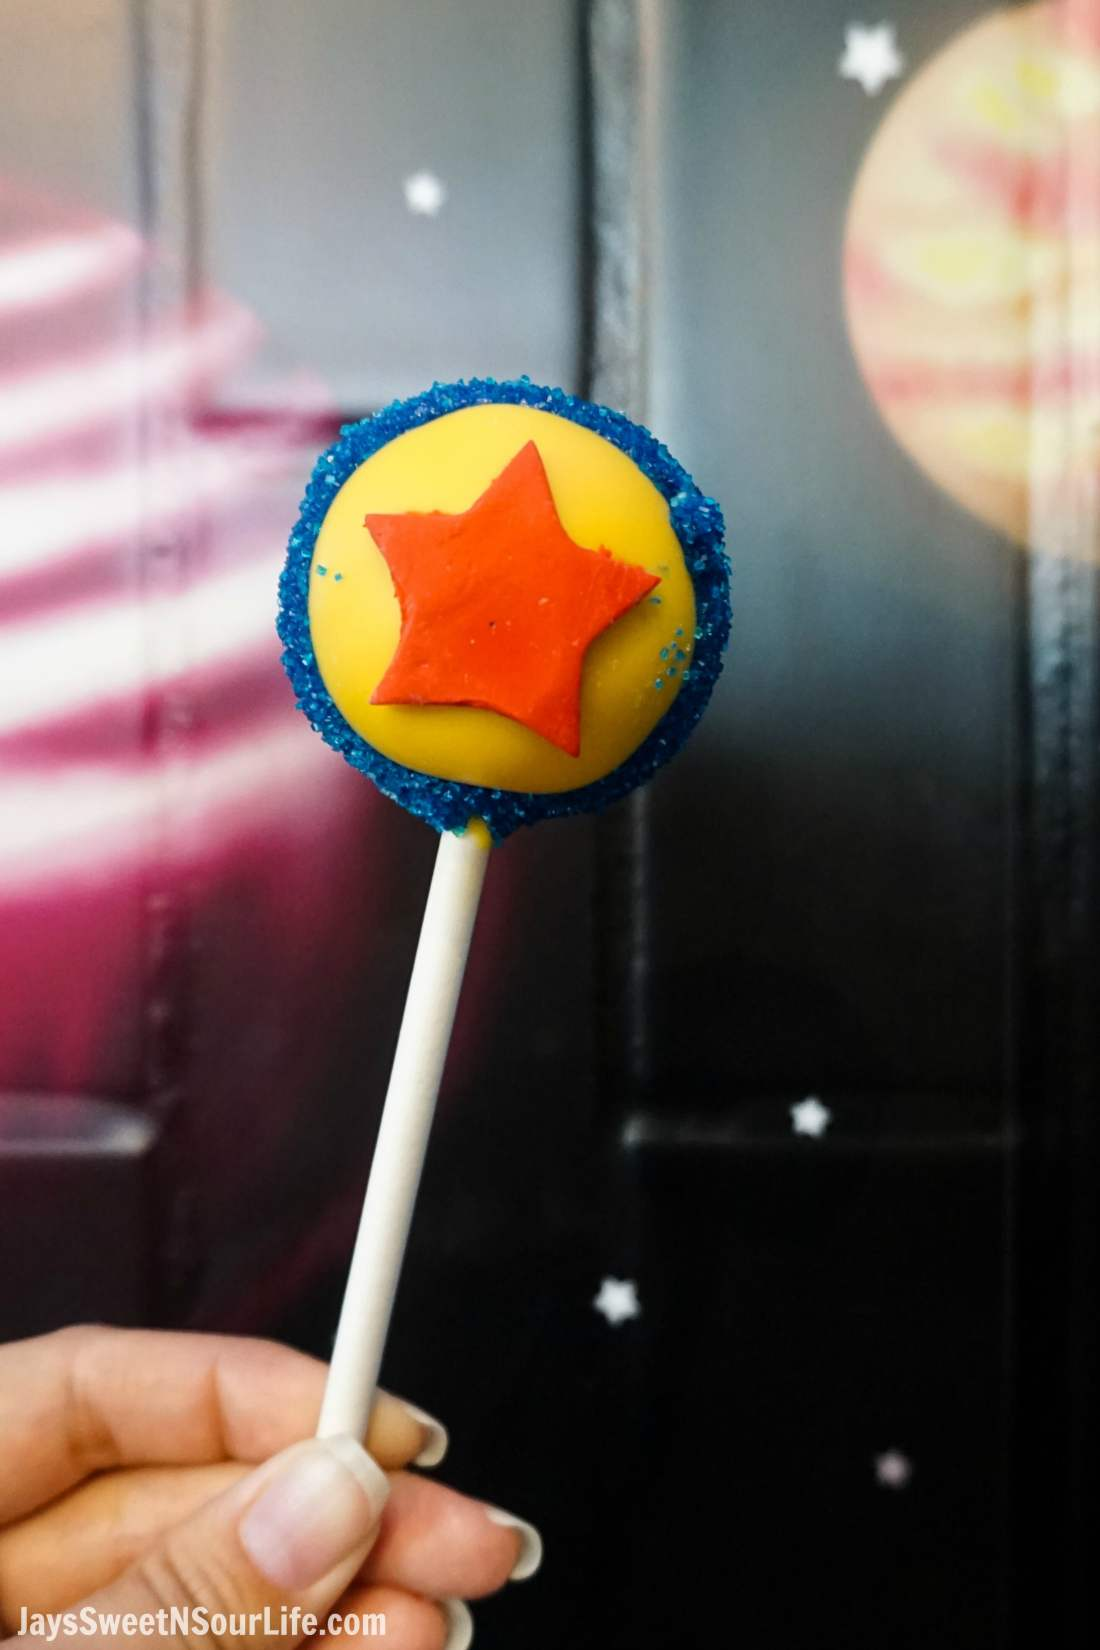 Pixar Fest Pixar Ball Cake Pop. Pixar Fest at Disneyland runs from April 13 through September 3rd.